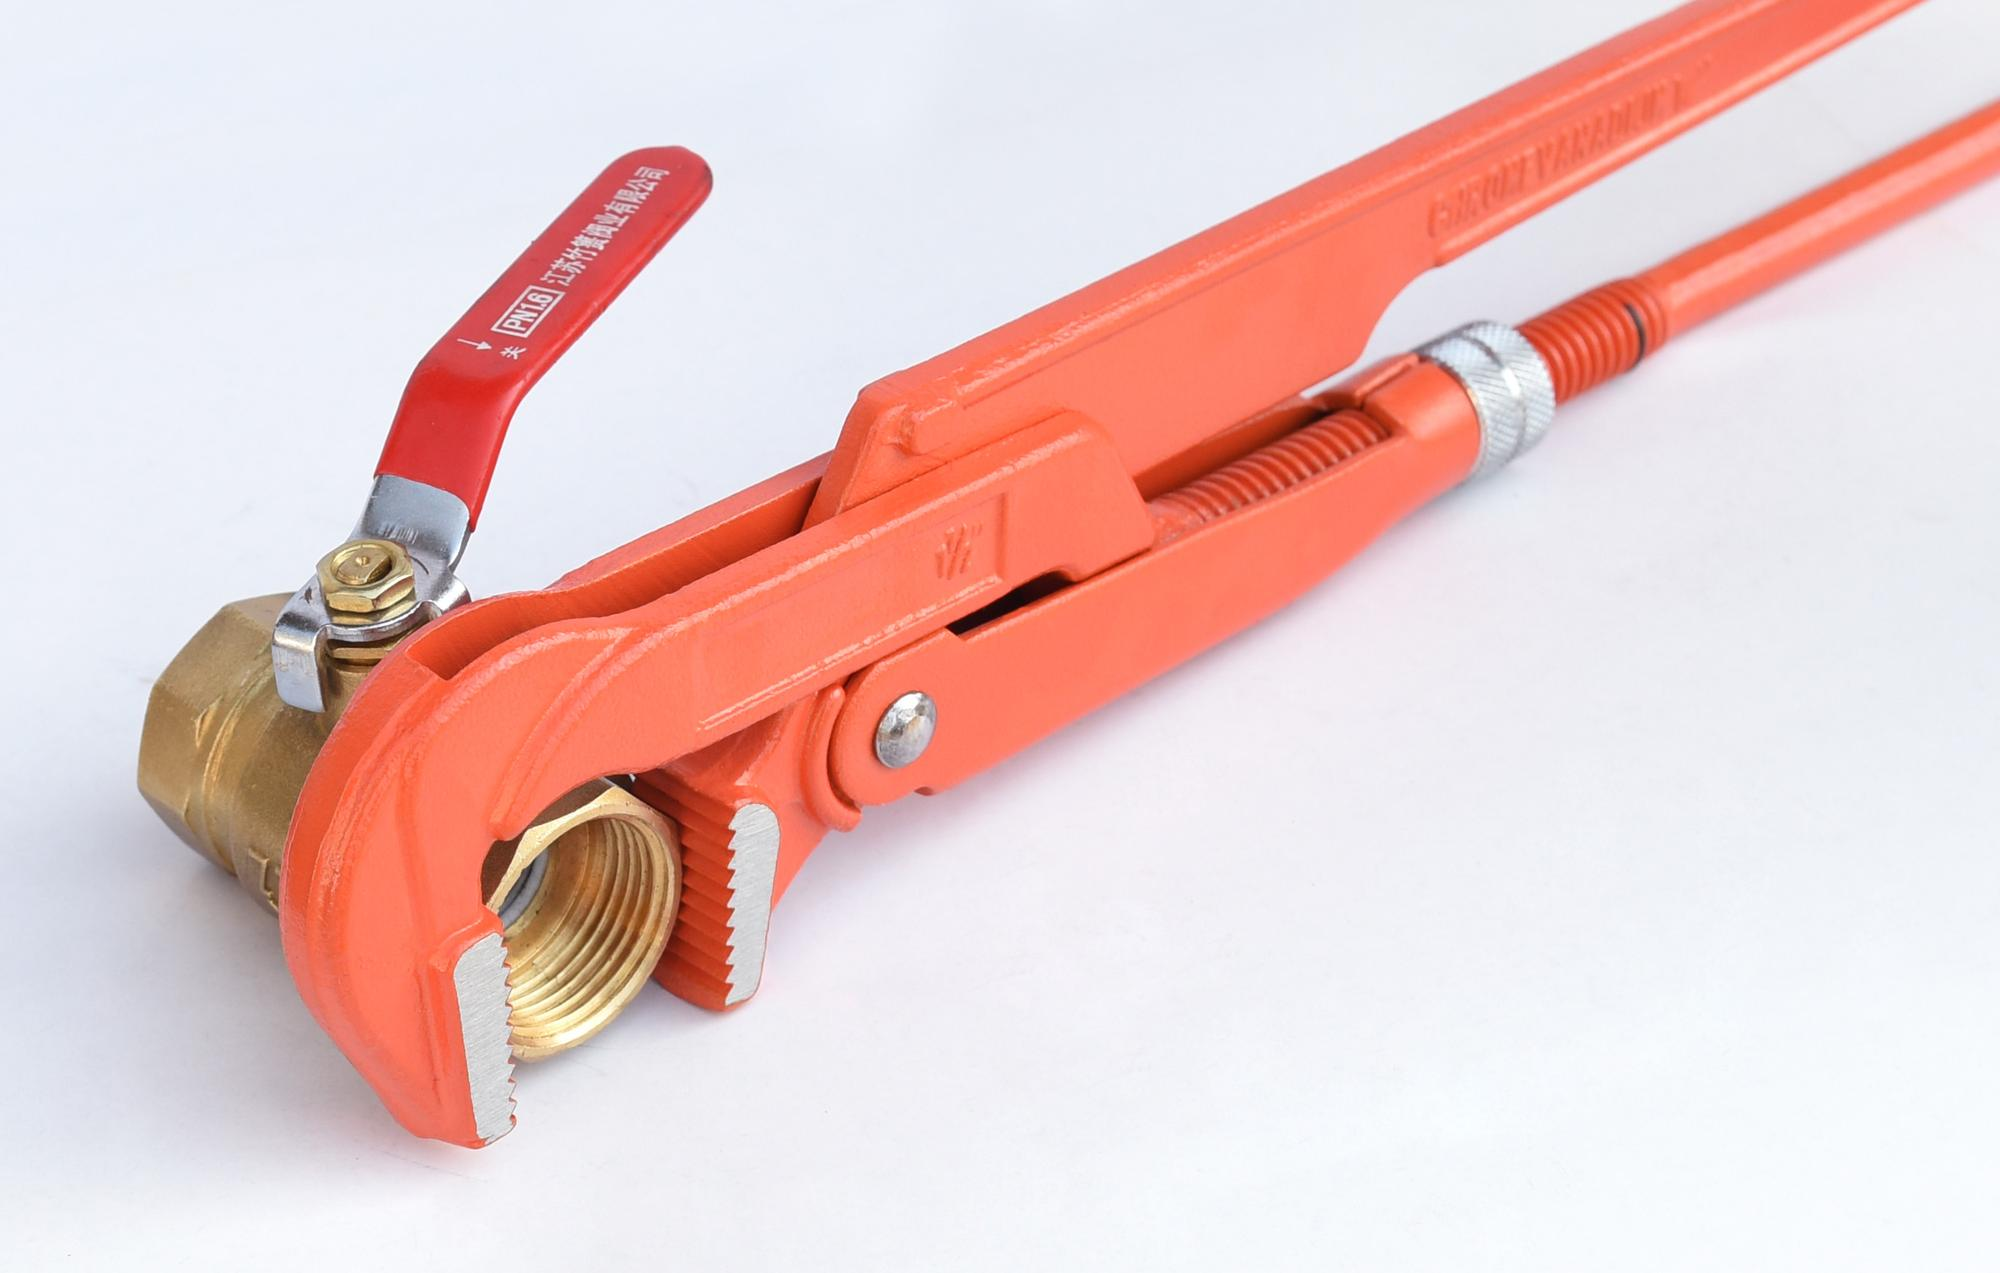 "1"" 90 Degree Drop Forged Carbon Steel CrV Swedish Bent Nose Pipe Wrench Factory"